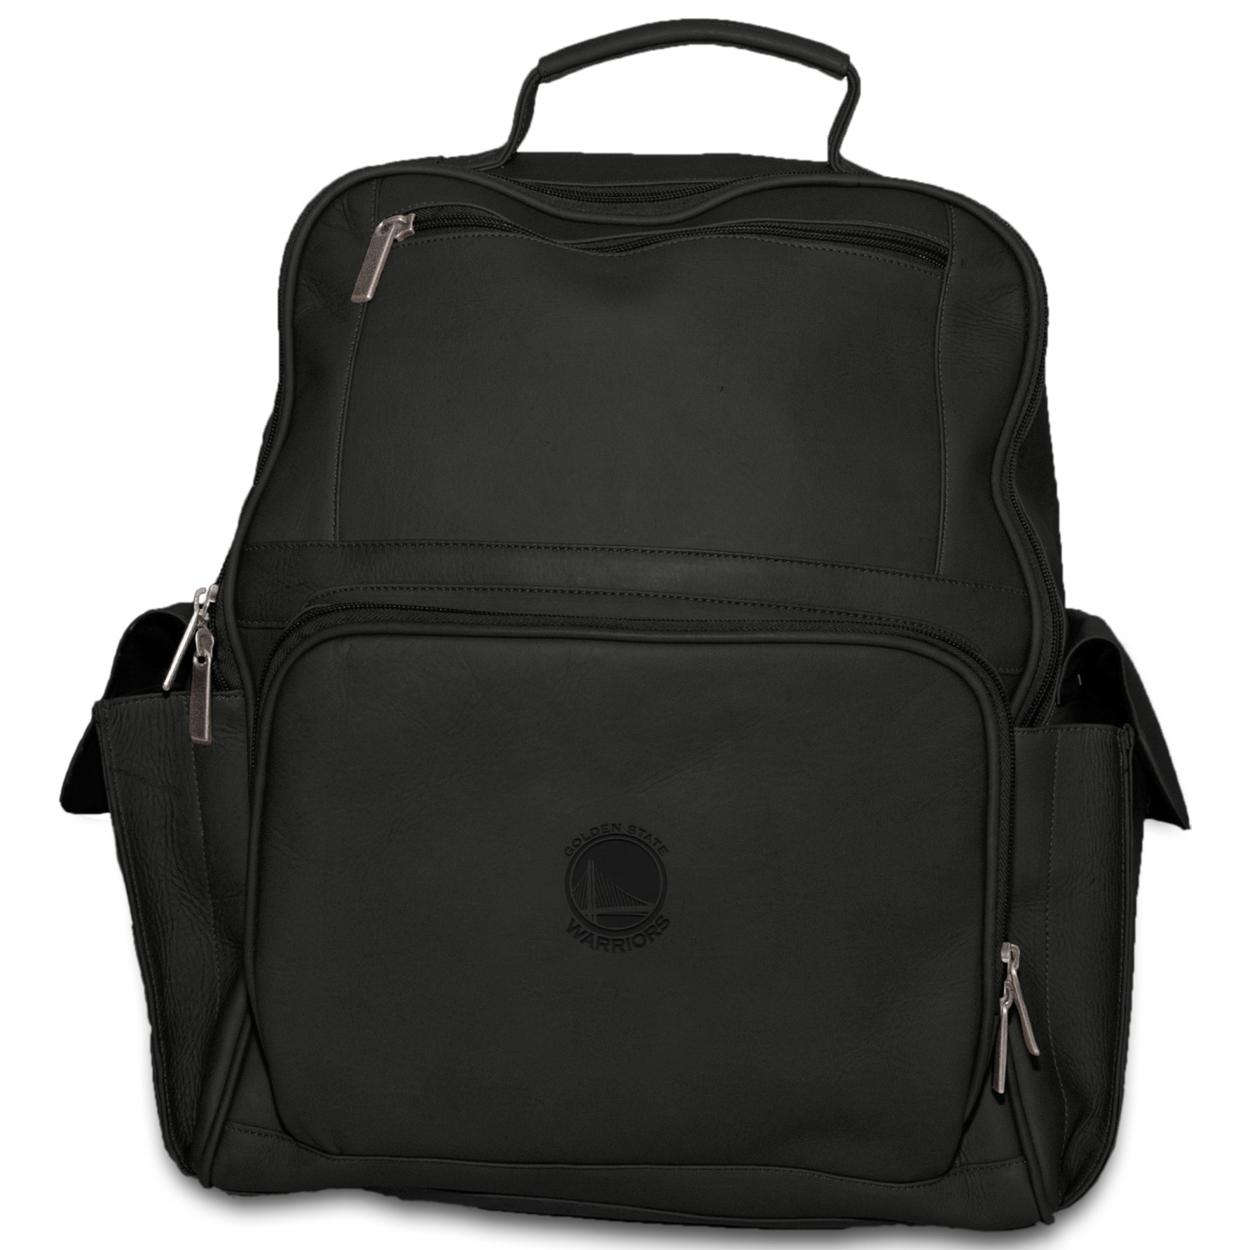 Pangea Black Leather Large Computer Backpack - Golden State Warriors Golden State Warriors PANGBKTGSWBKB